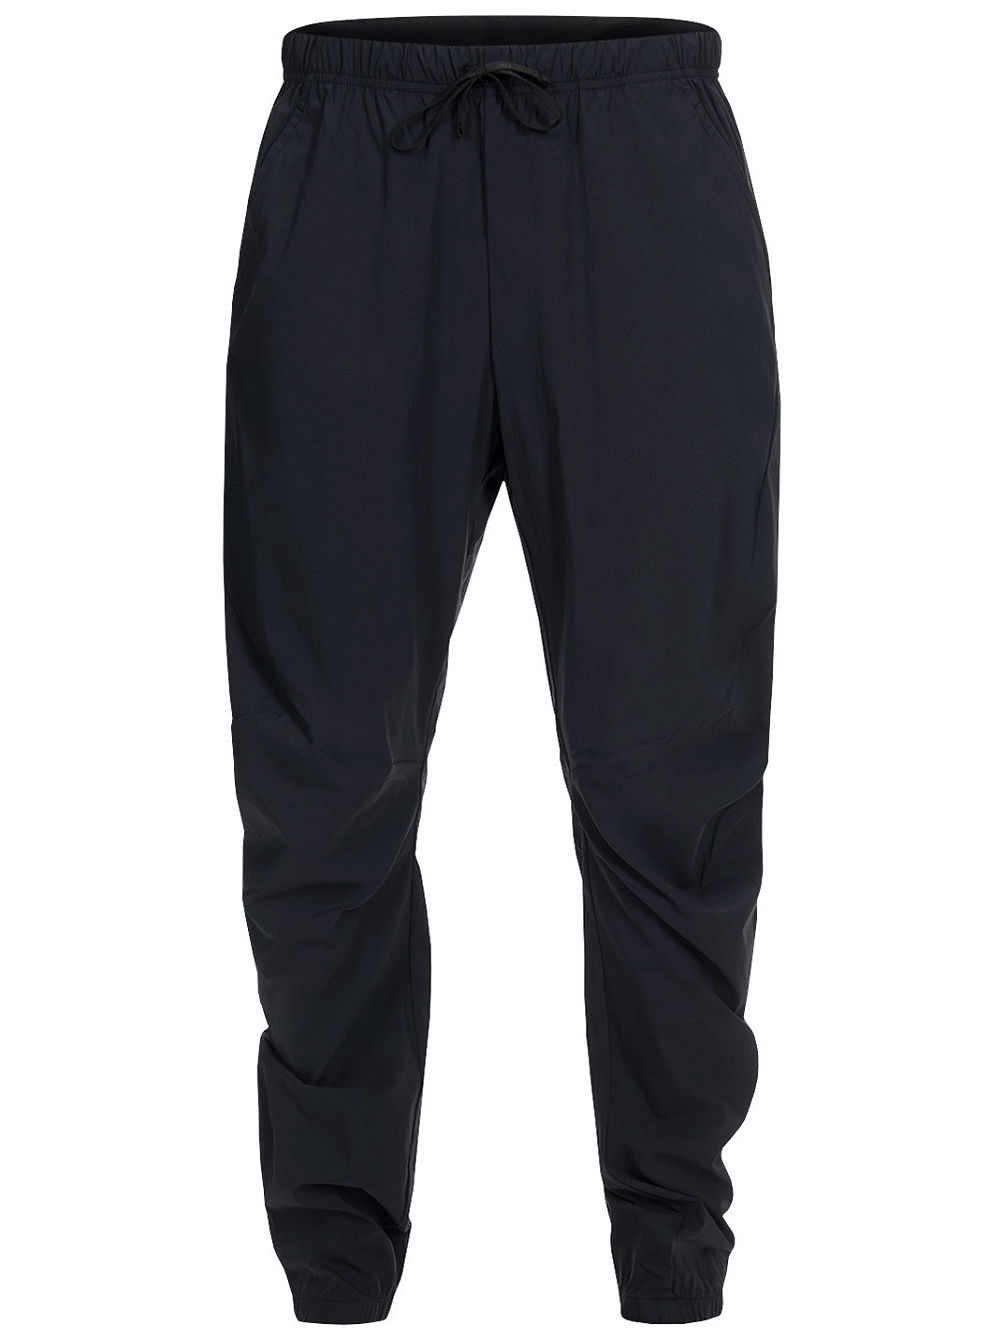 Civil Light Outdoor Pants